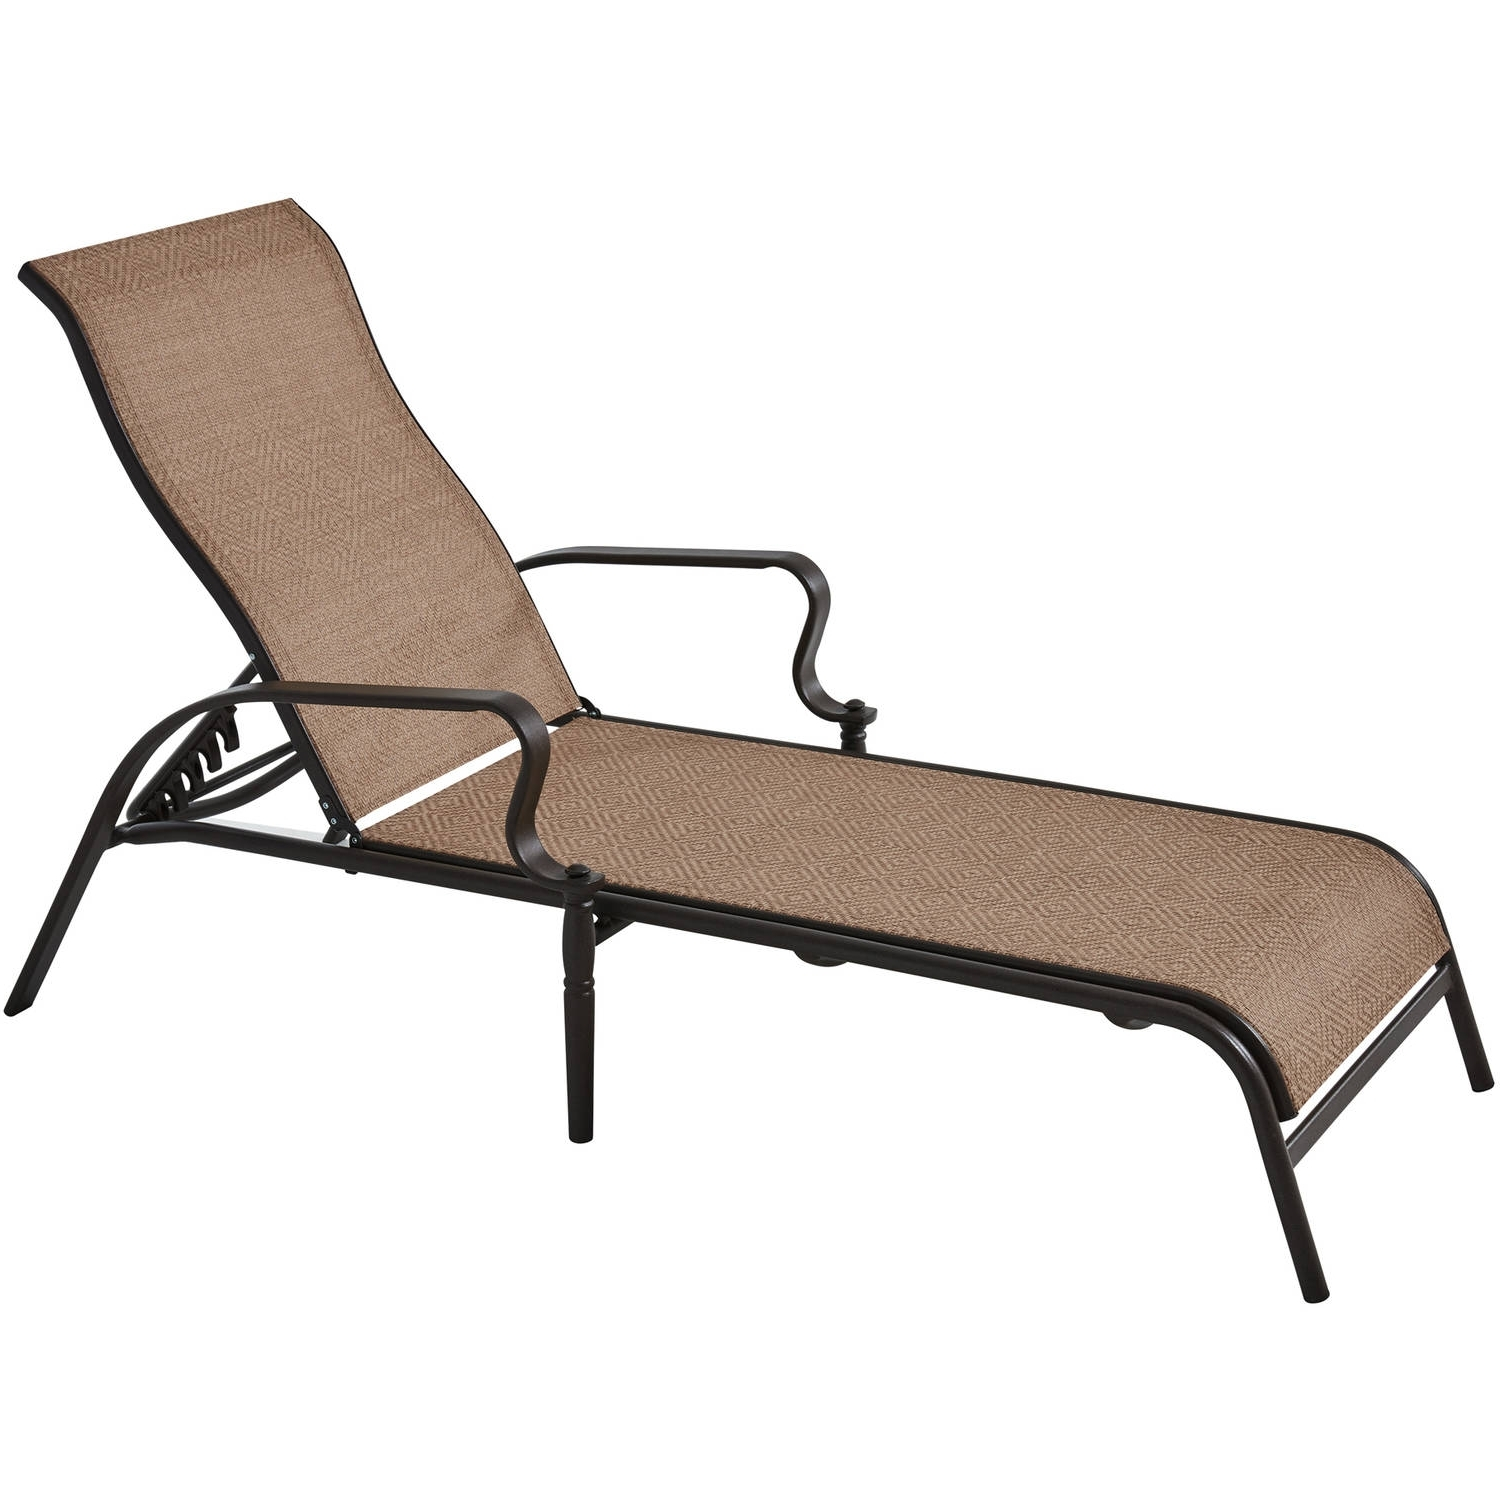 15 Best Collection Of Sears Chaise Lounges